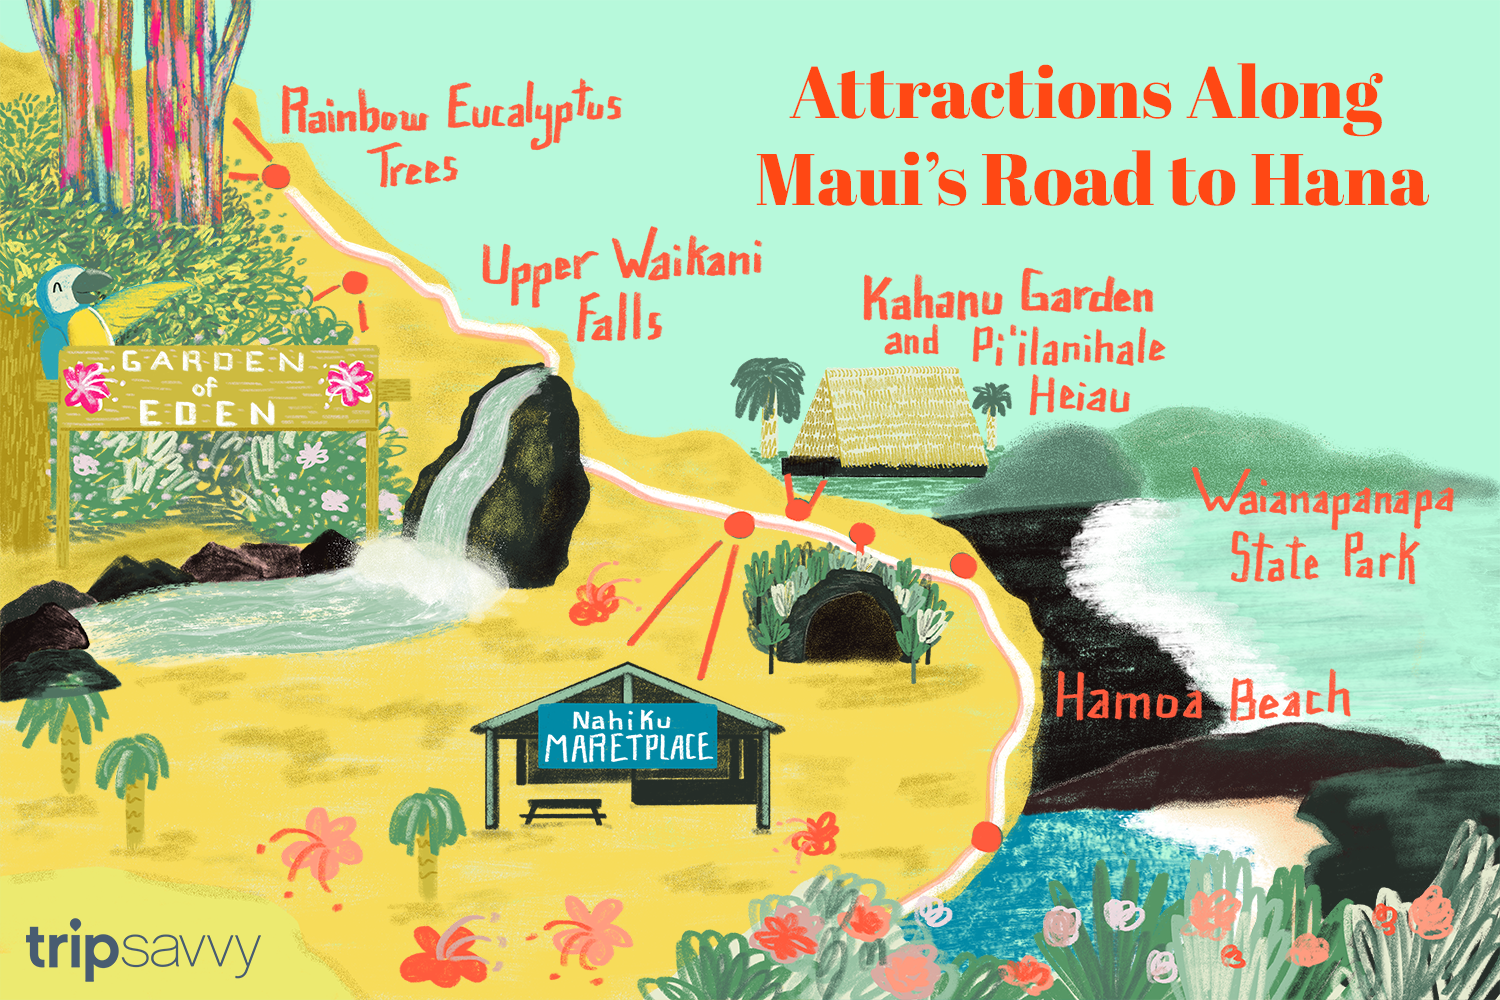 attractions along the road to hana